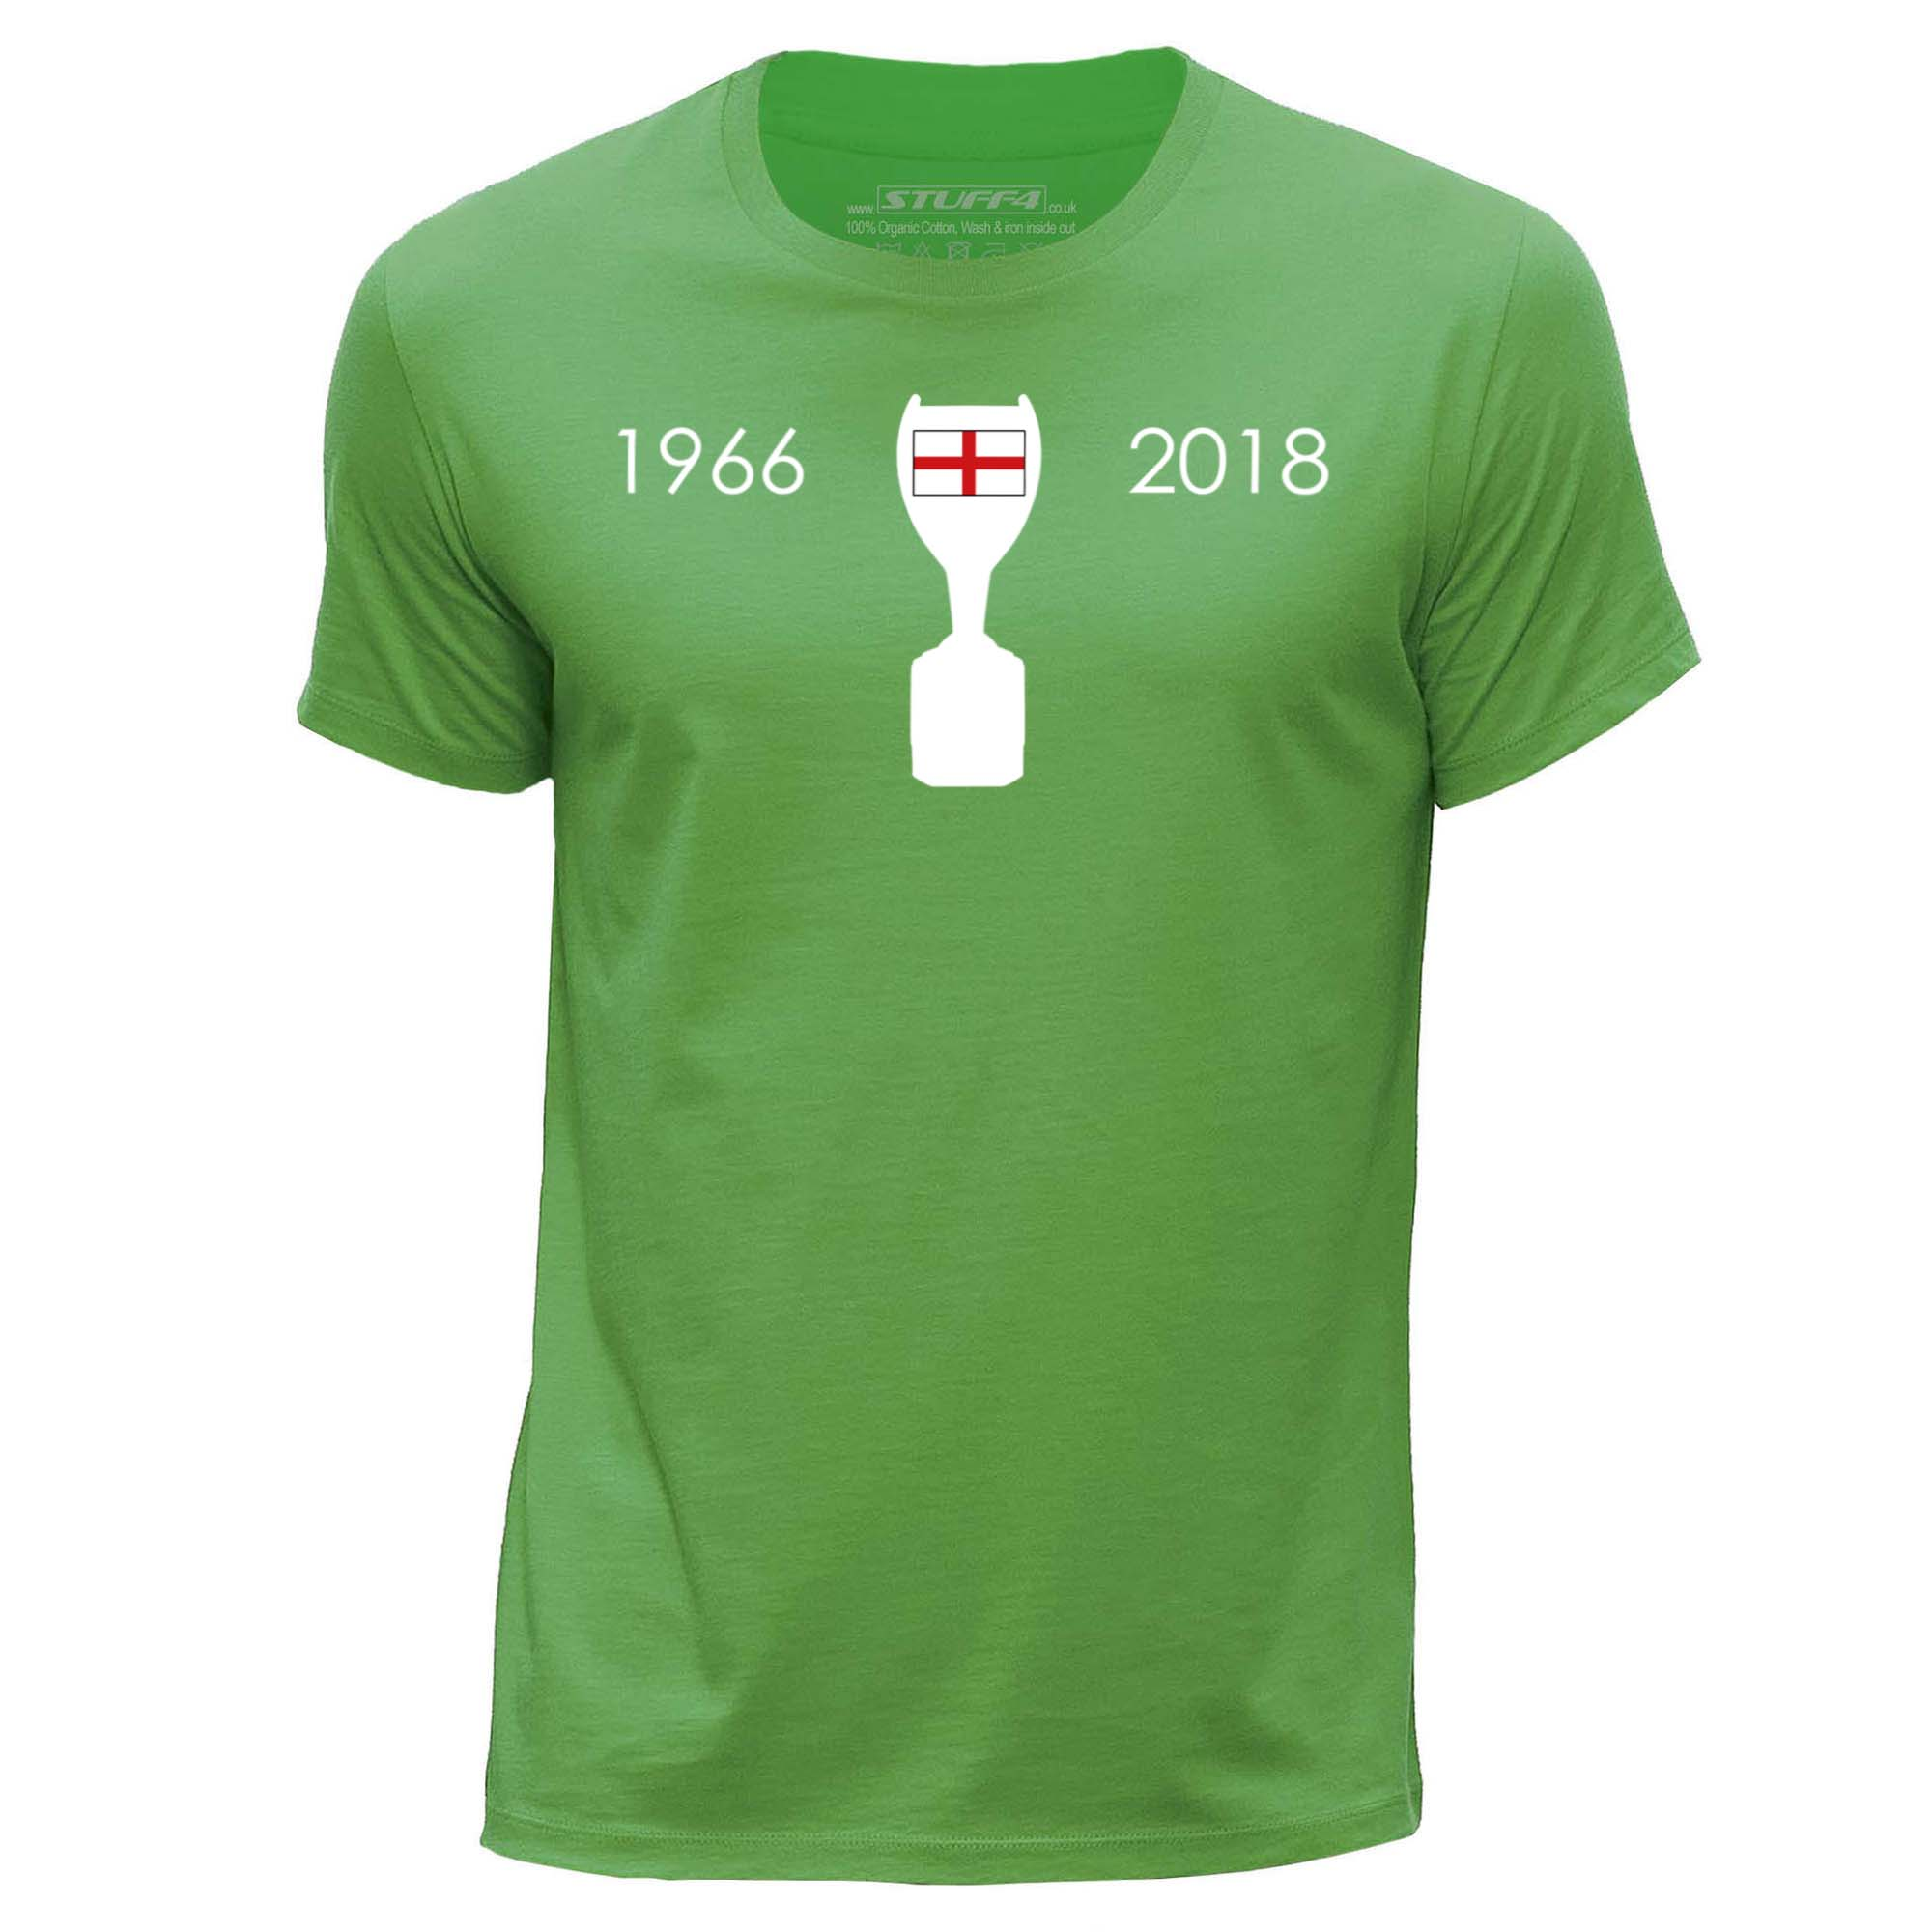 ROBA-4-MEN-039-S-SCOLLO-TONDO-T-shirt-JULES-RIMET-WORLD-CUP-CHAMPIONS-CS